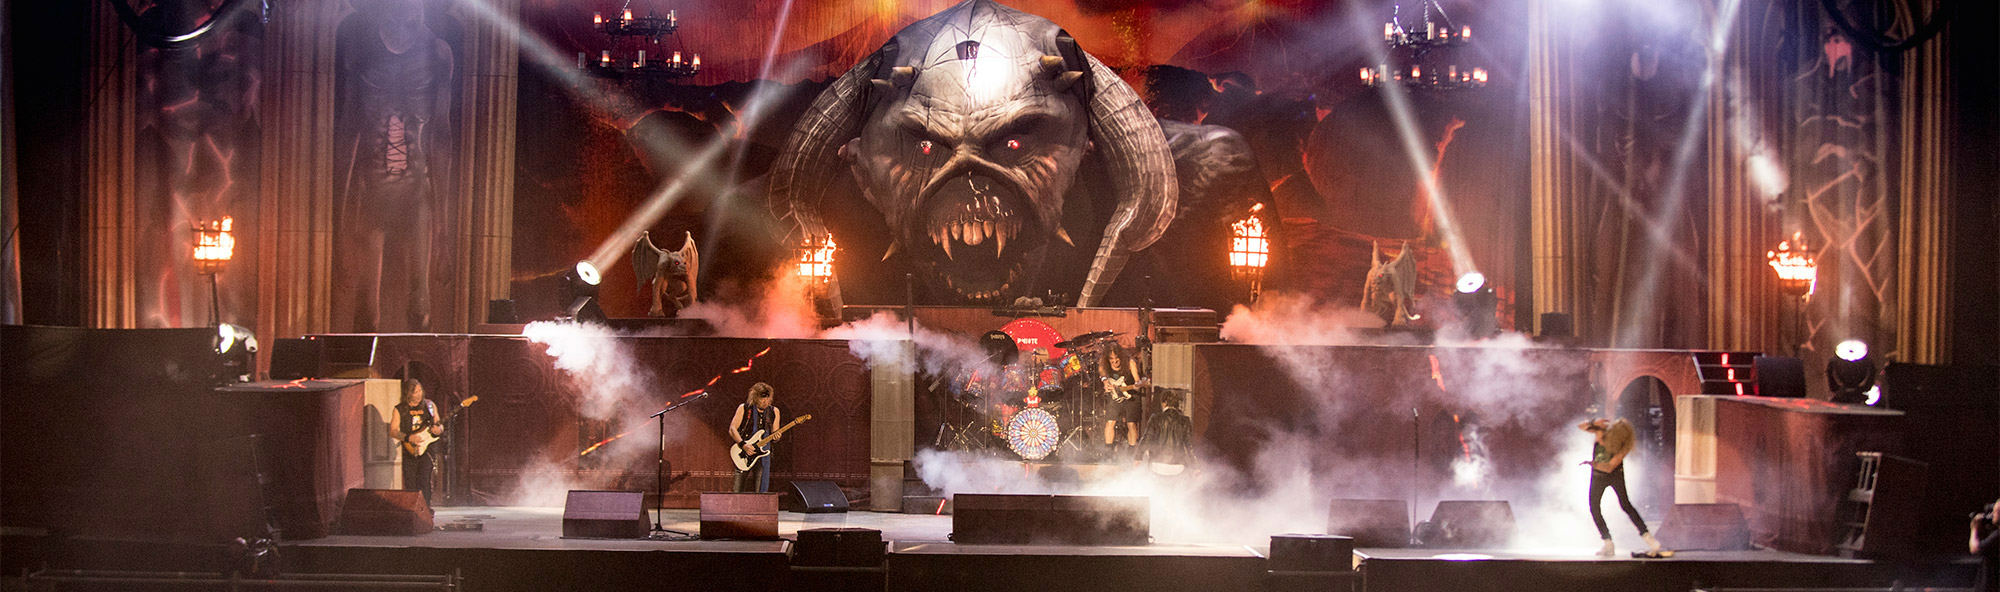 Vl6000 Iron Maiden Image 3 – Photo credits: © JOHN MCMURTRIE